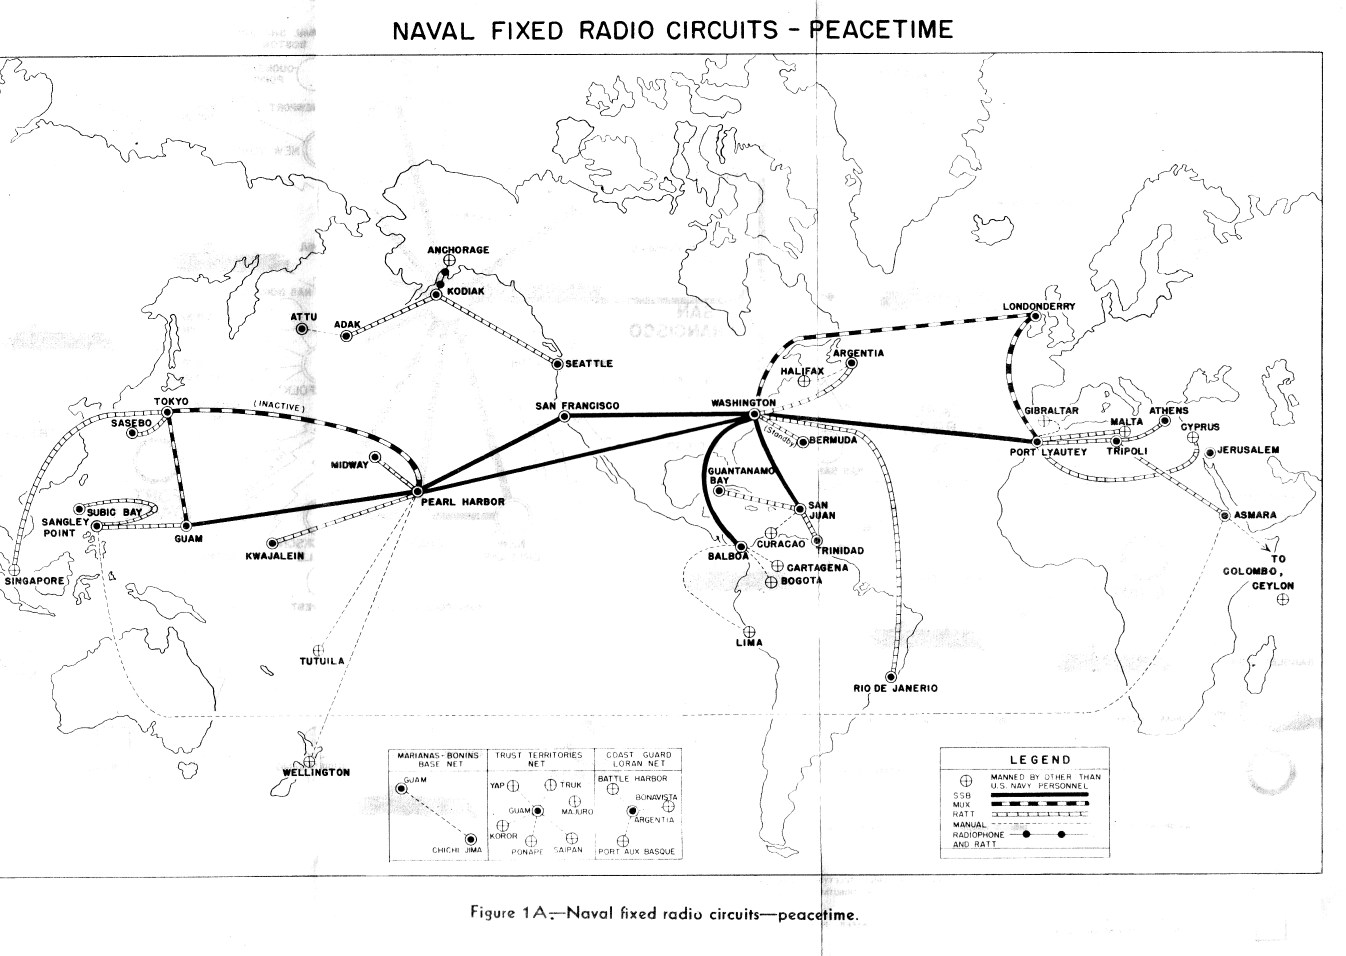 Navy Radio Circuits, Traffic Handling, and Messages